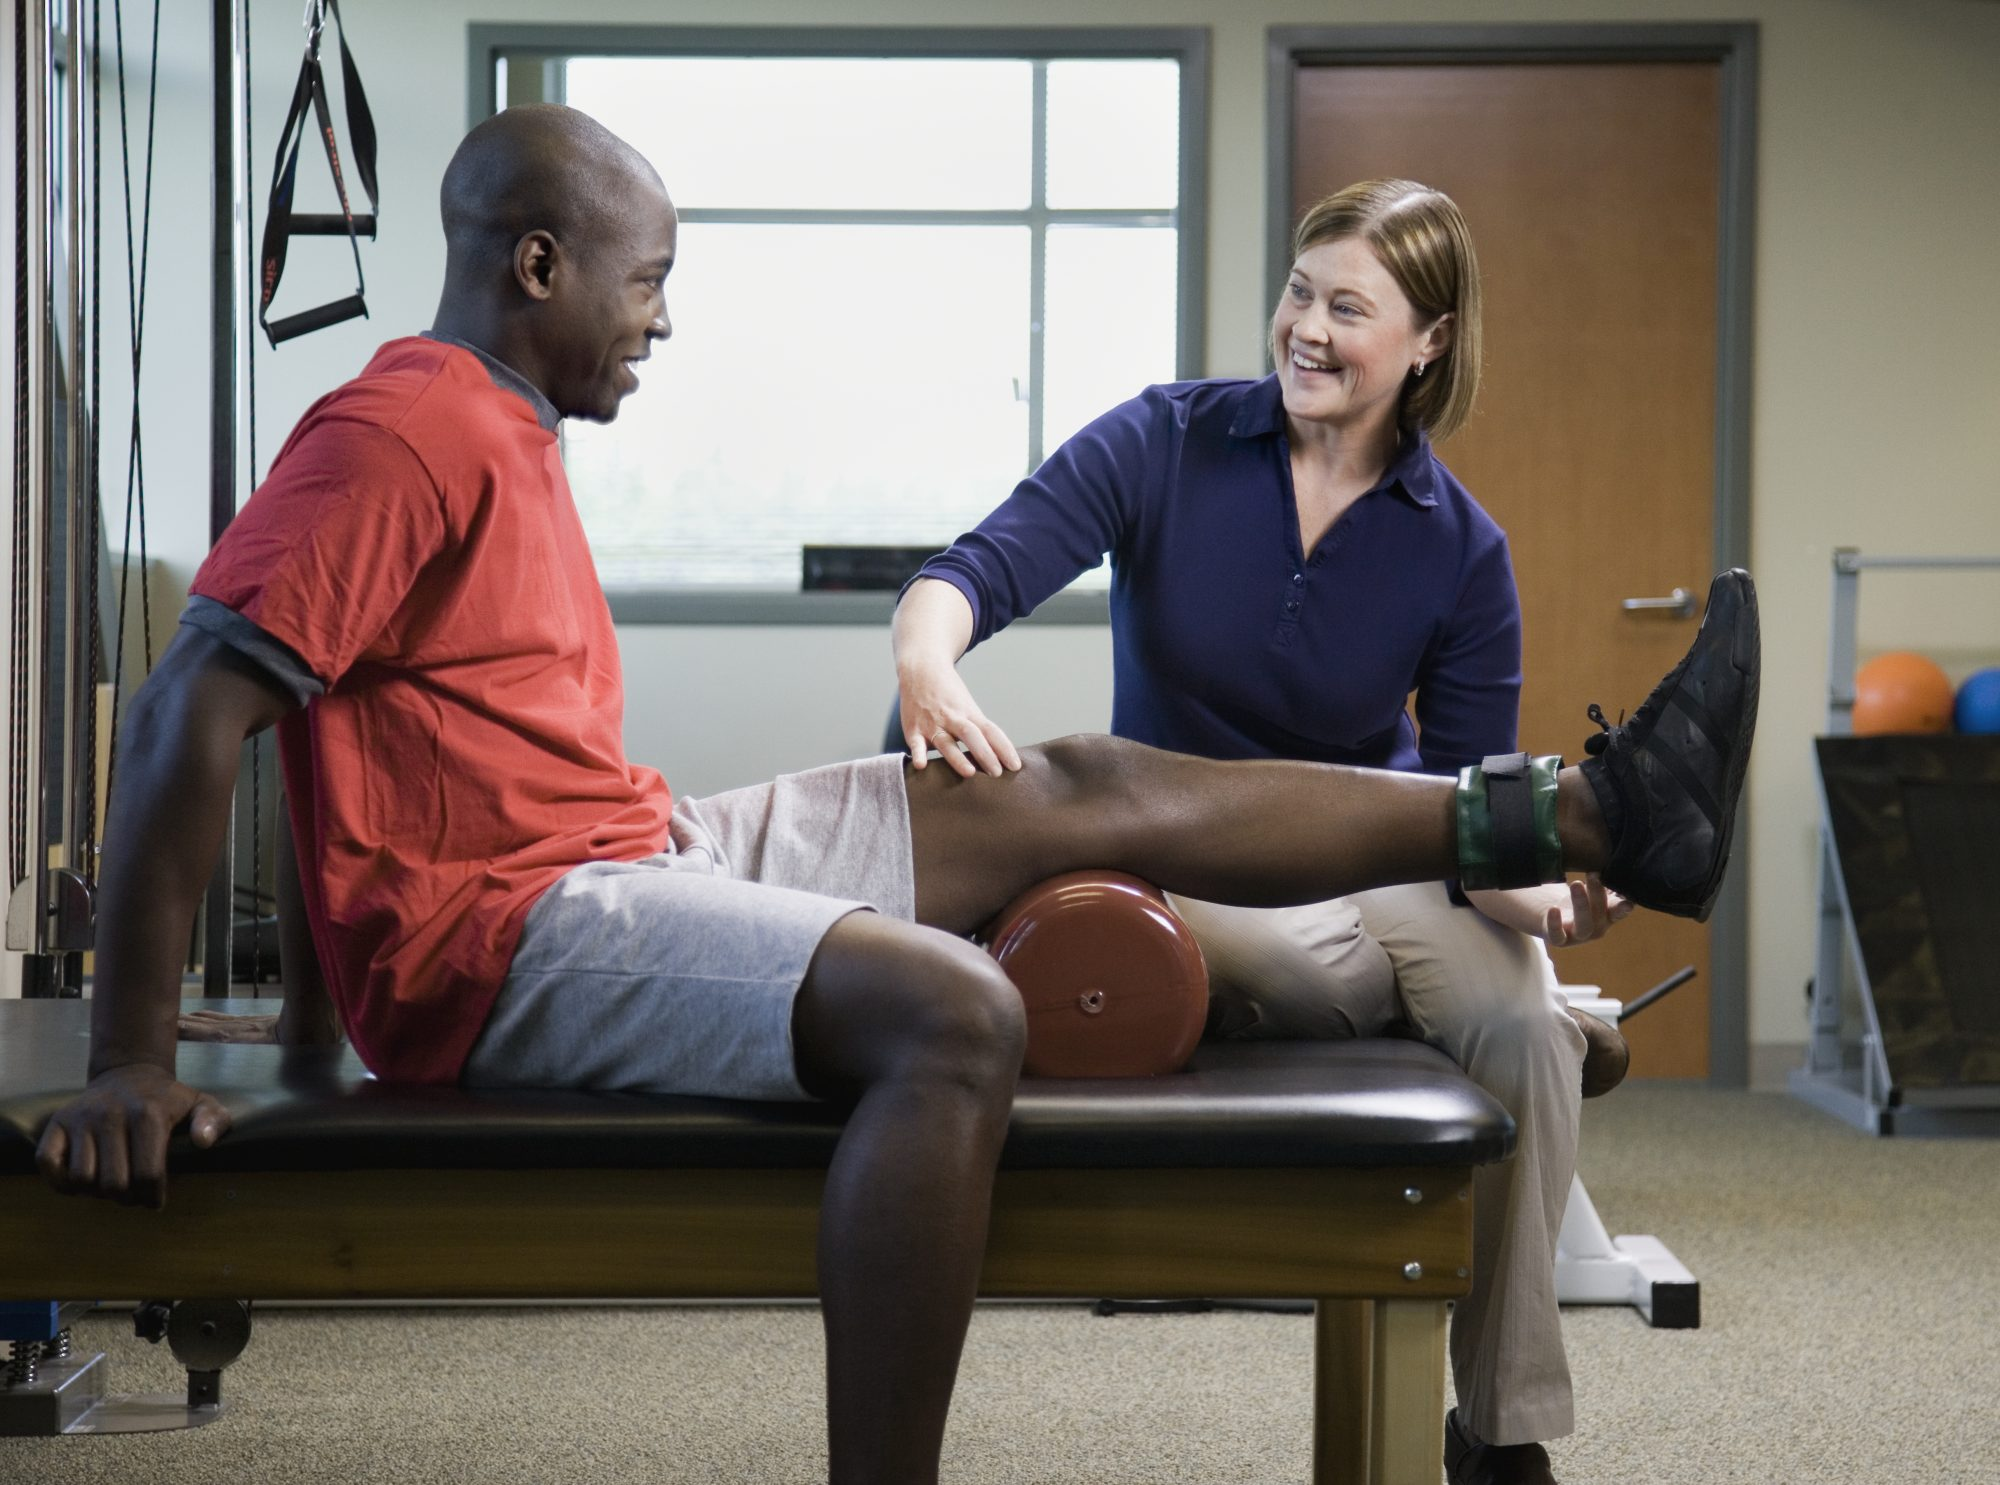 Look into physical therapy